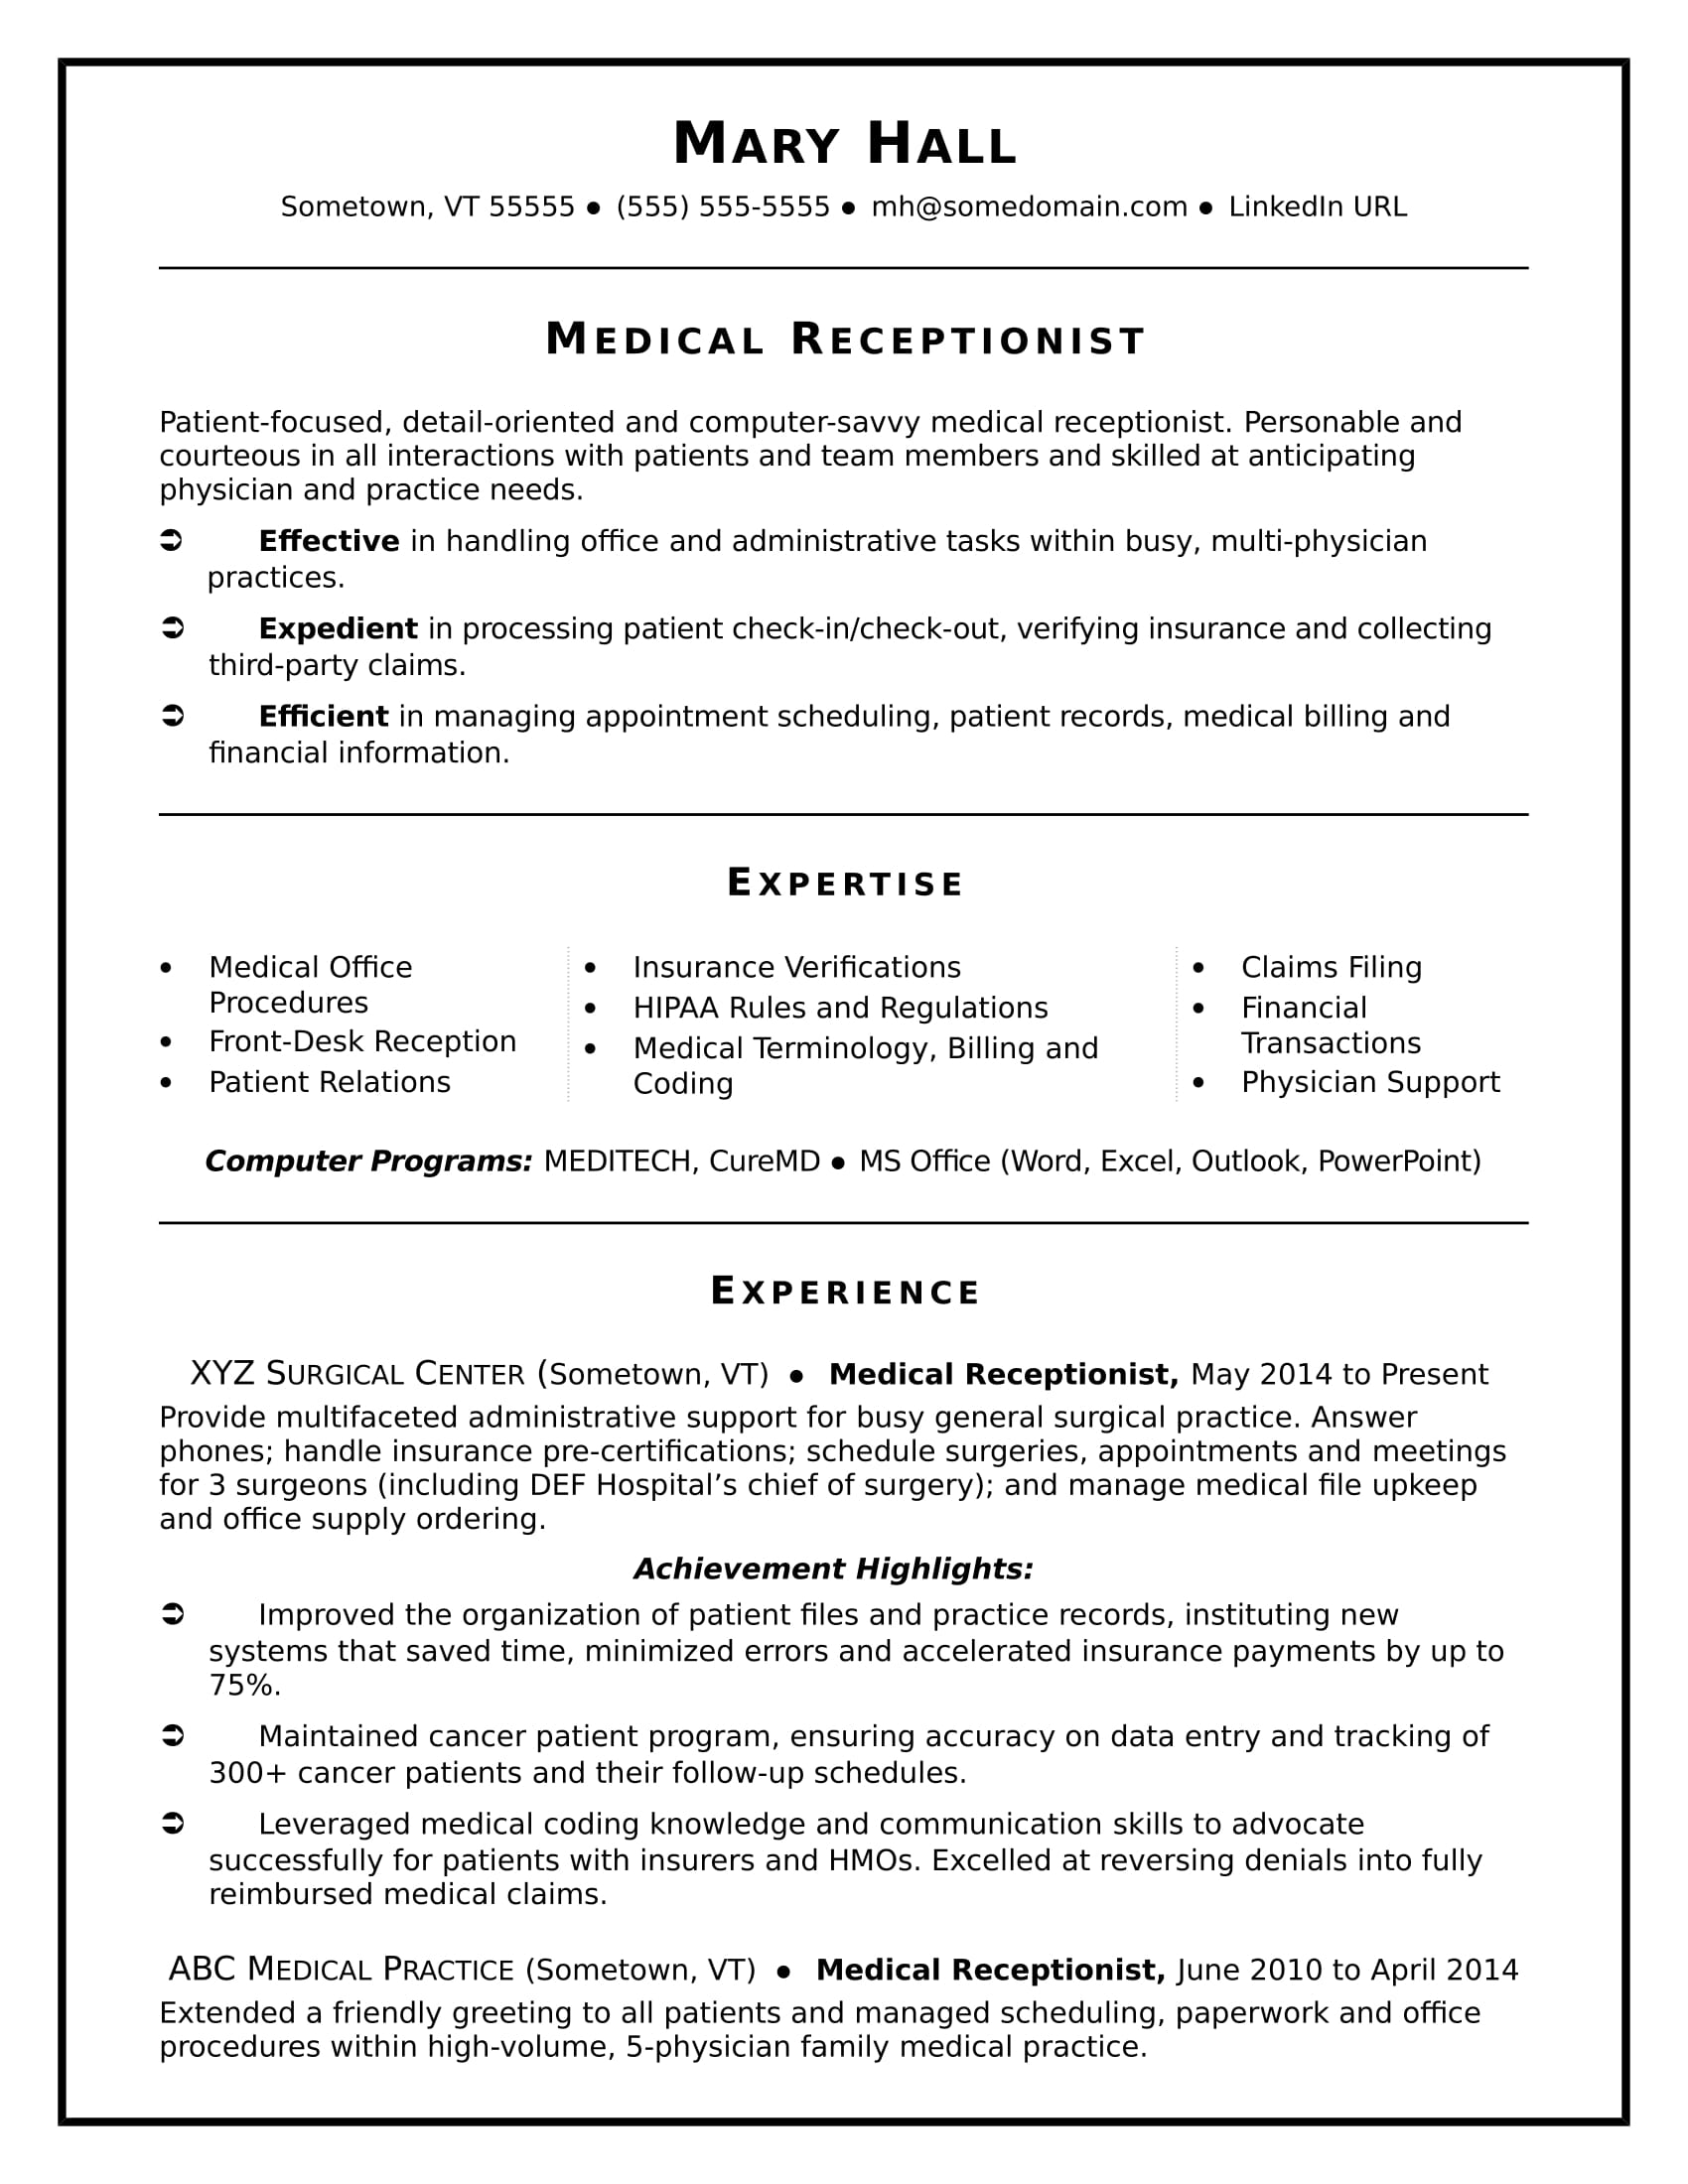 medical receptionist resume sample monster format for healthcare jobs professional work Resume Resume Format For Healthcare Jobs